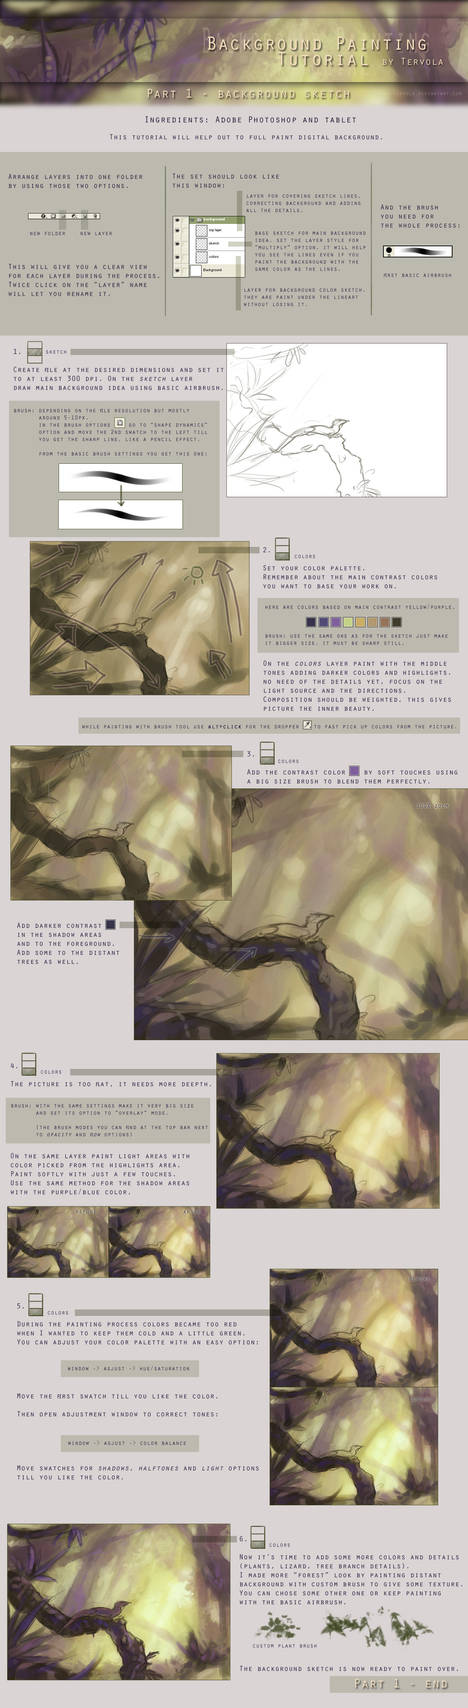 Background Tutorial 1 by Tervola